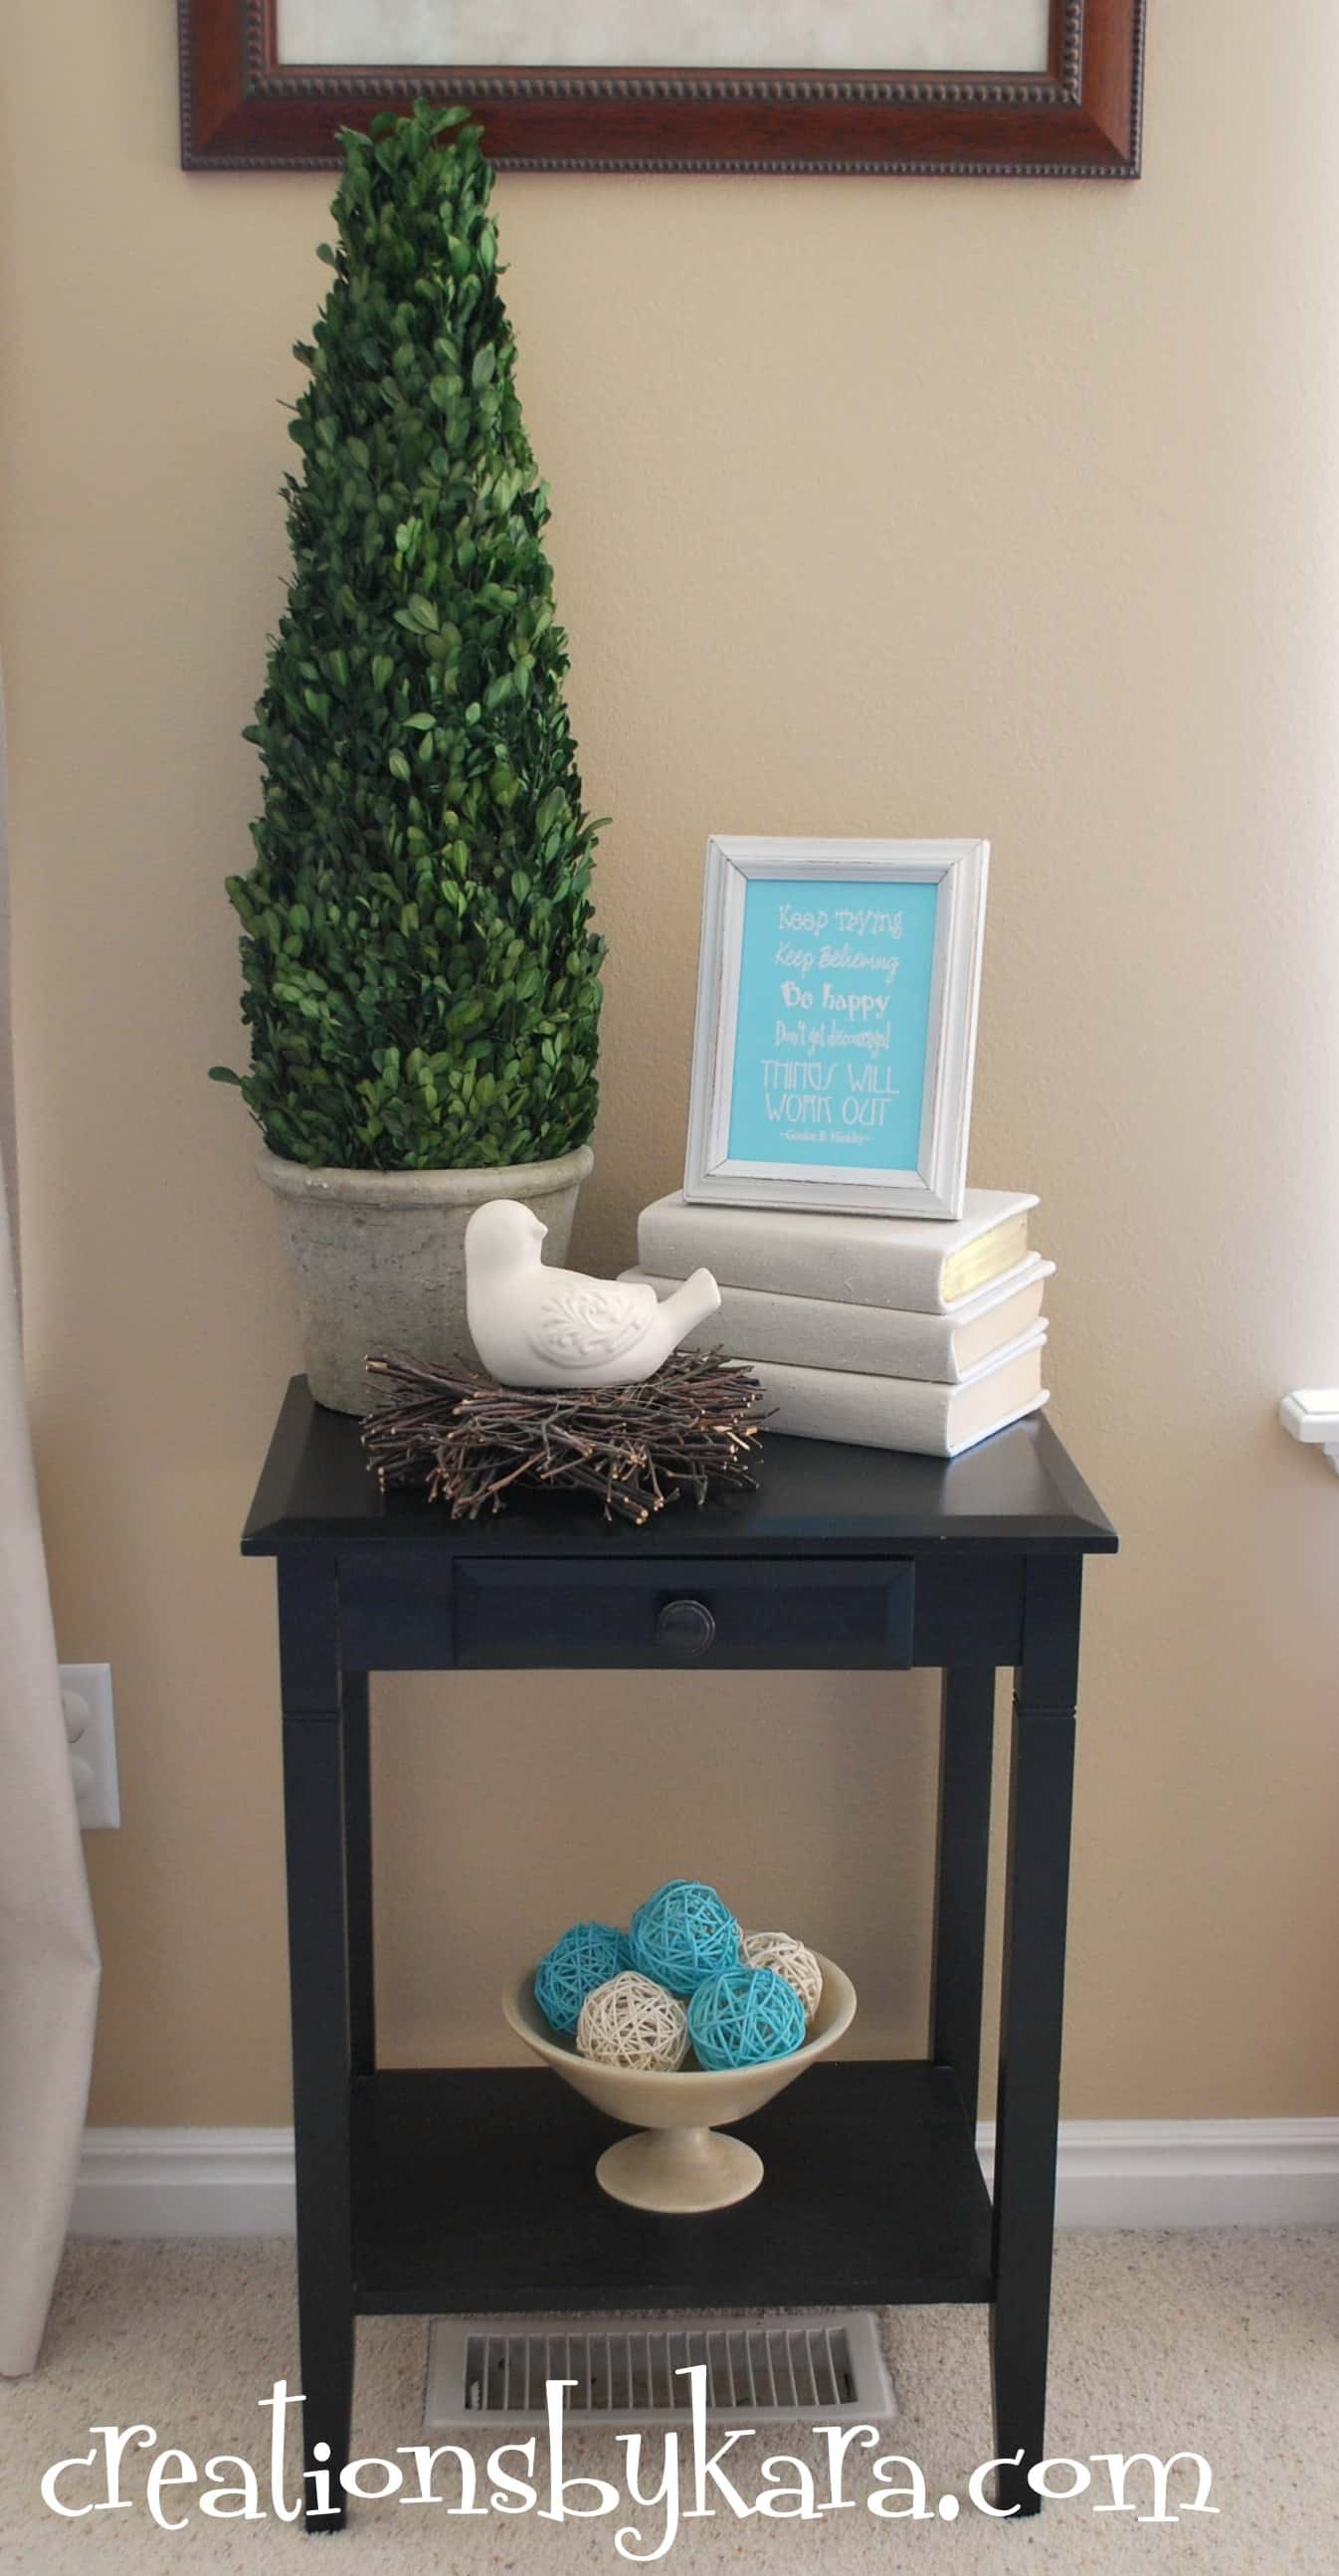 Diy decorating living room table creations by kara for Living room table decorating ideas